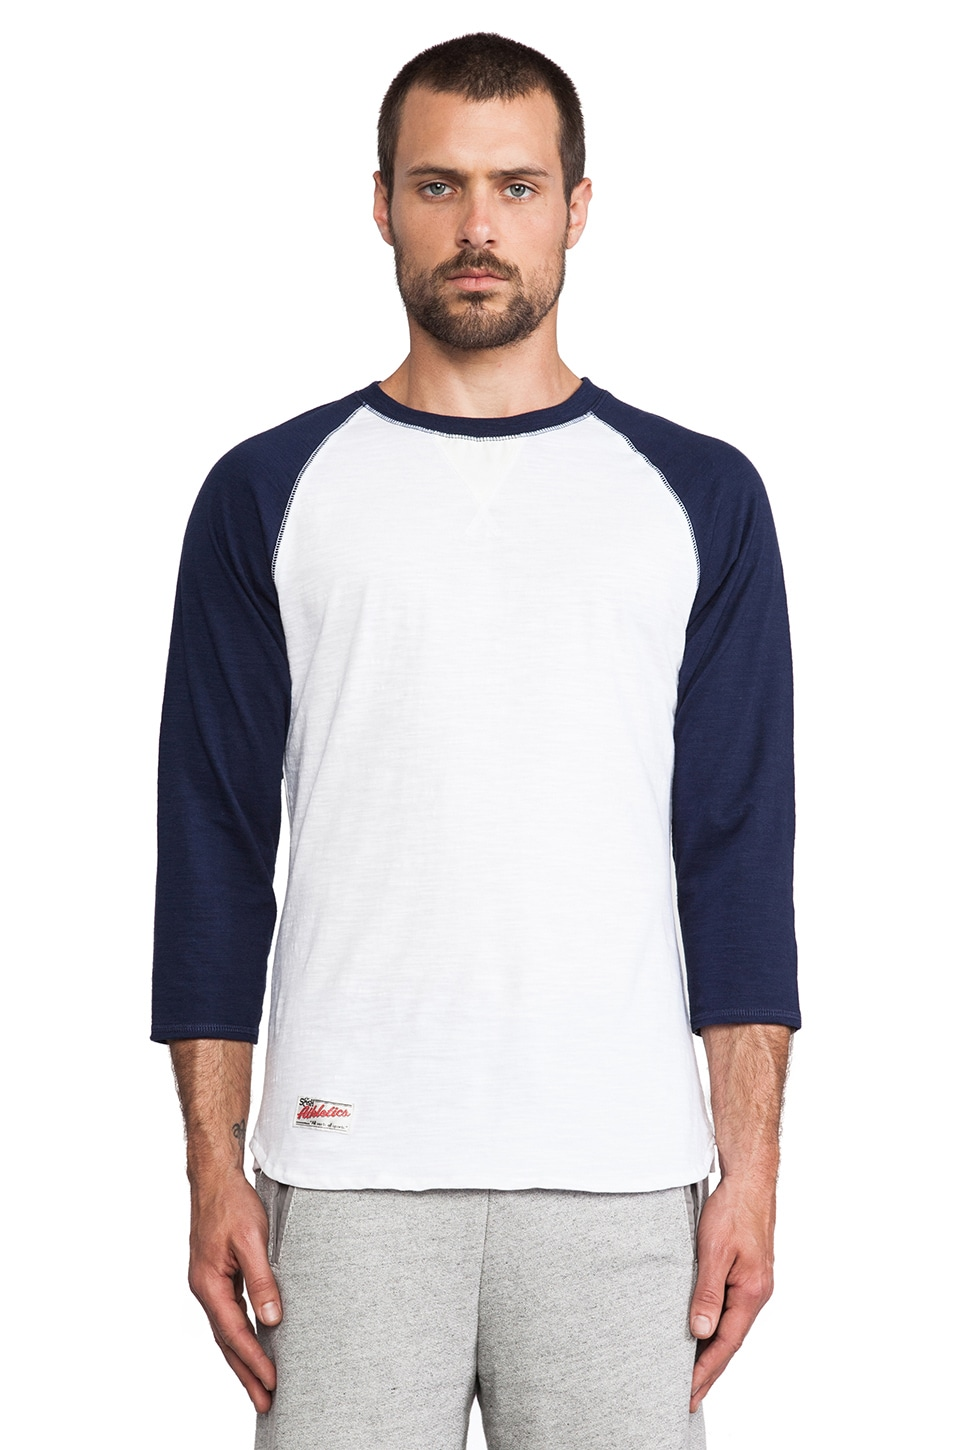 S&H Athletics Griffey Baseball Shirt in Navy & White